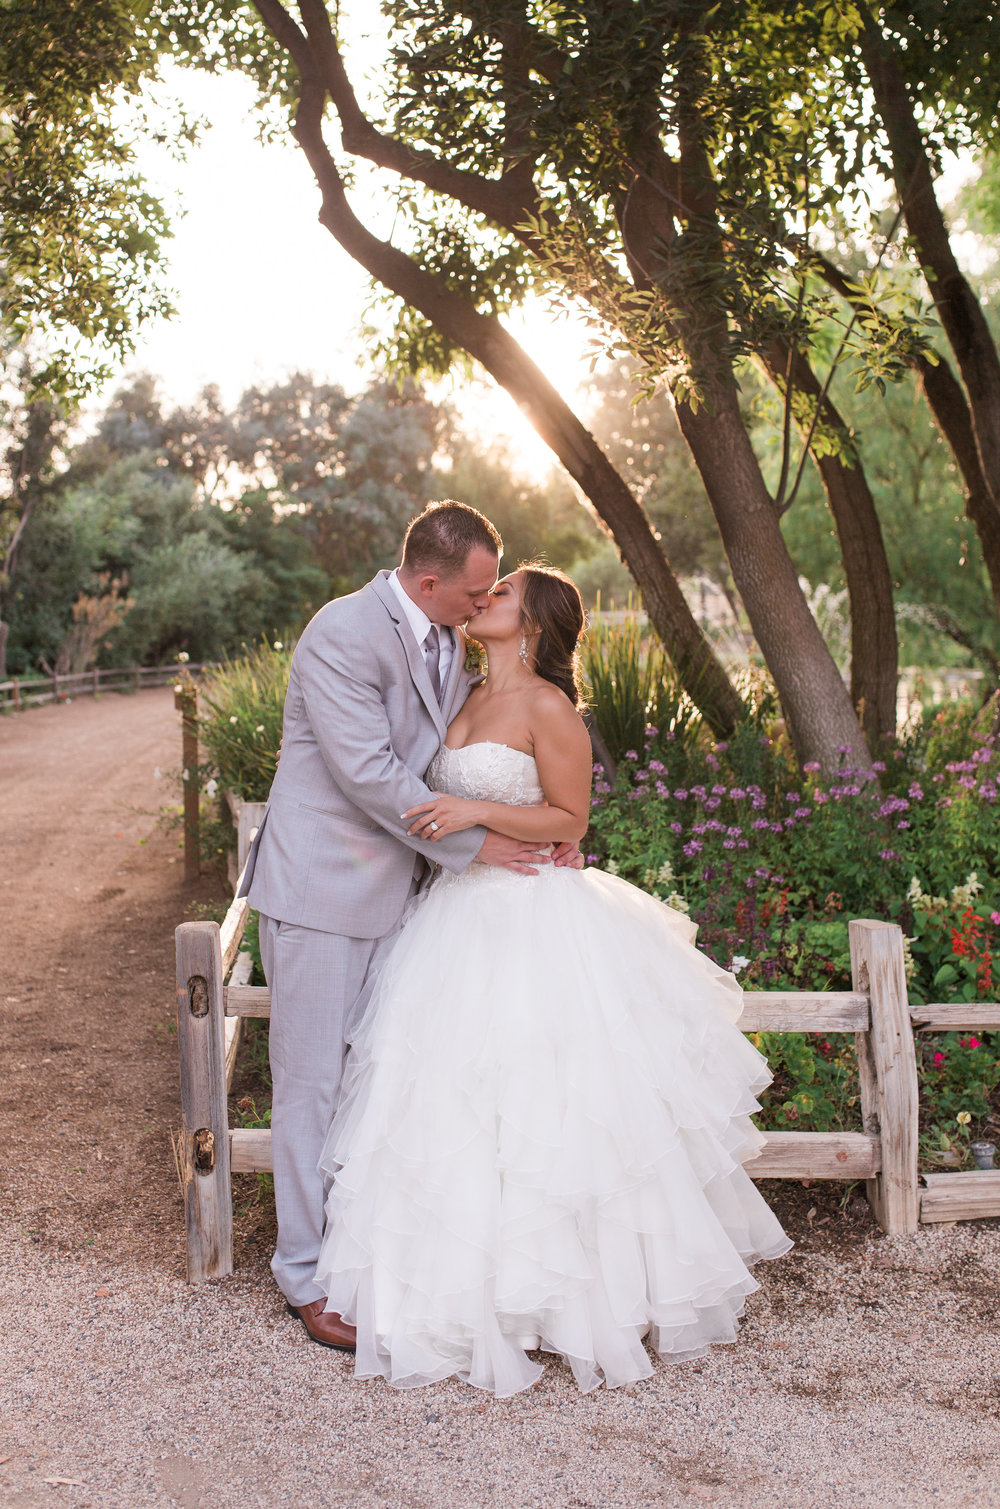 Fine Art Wedding Photographer based in Temecula, CA